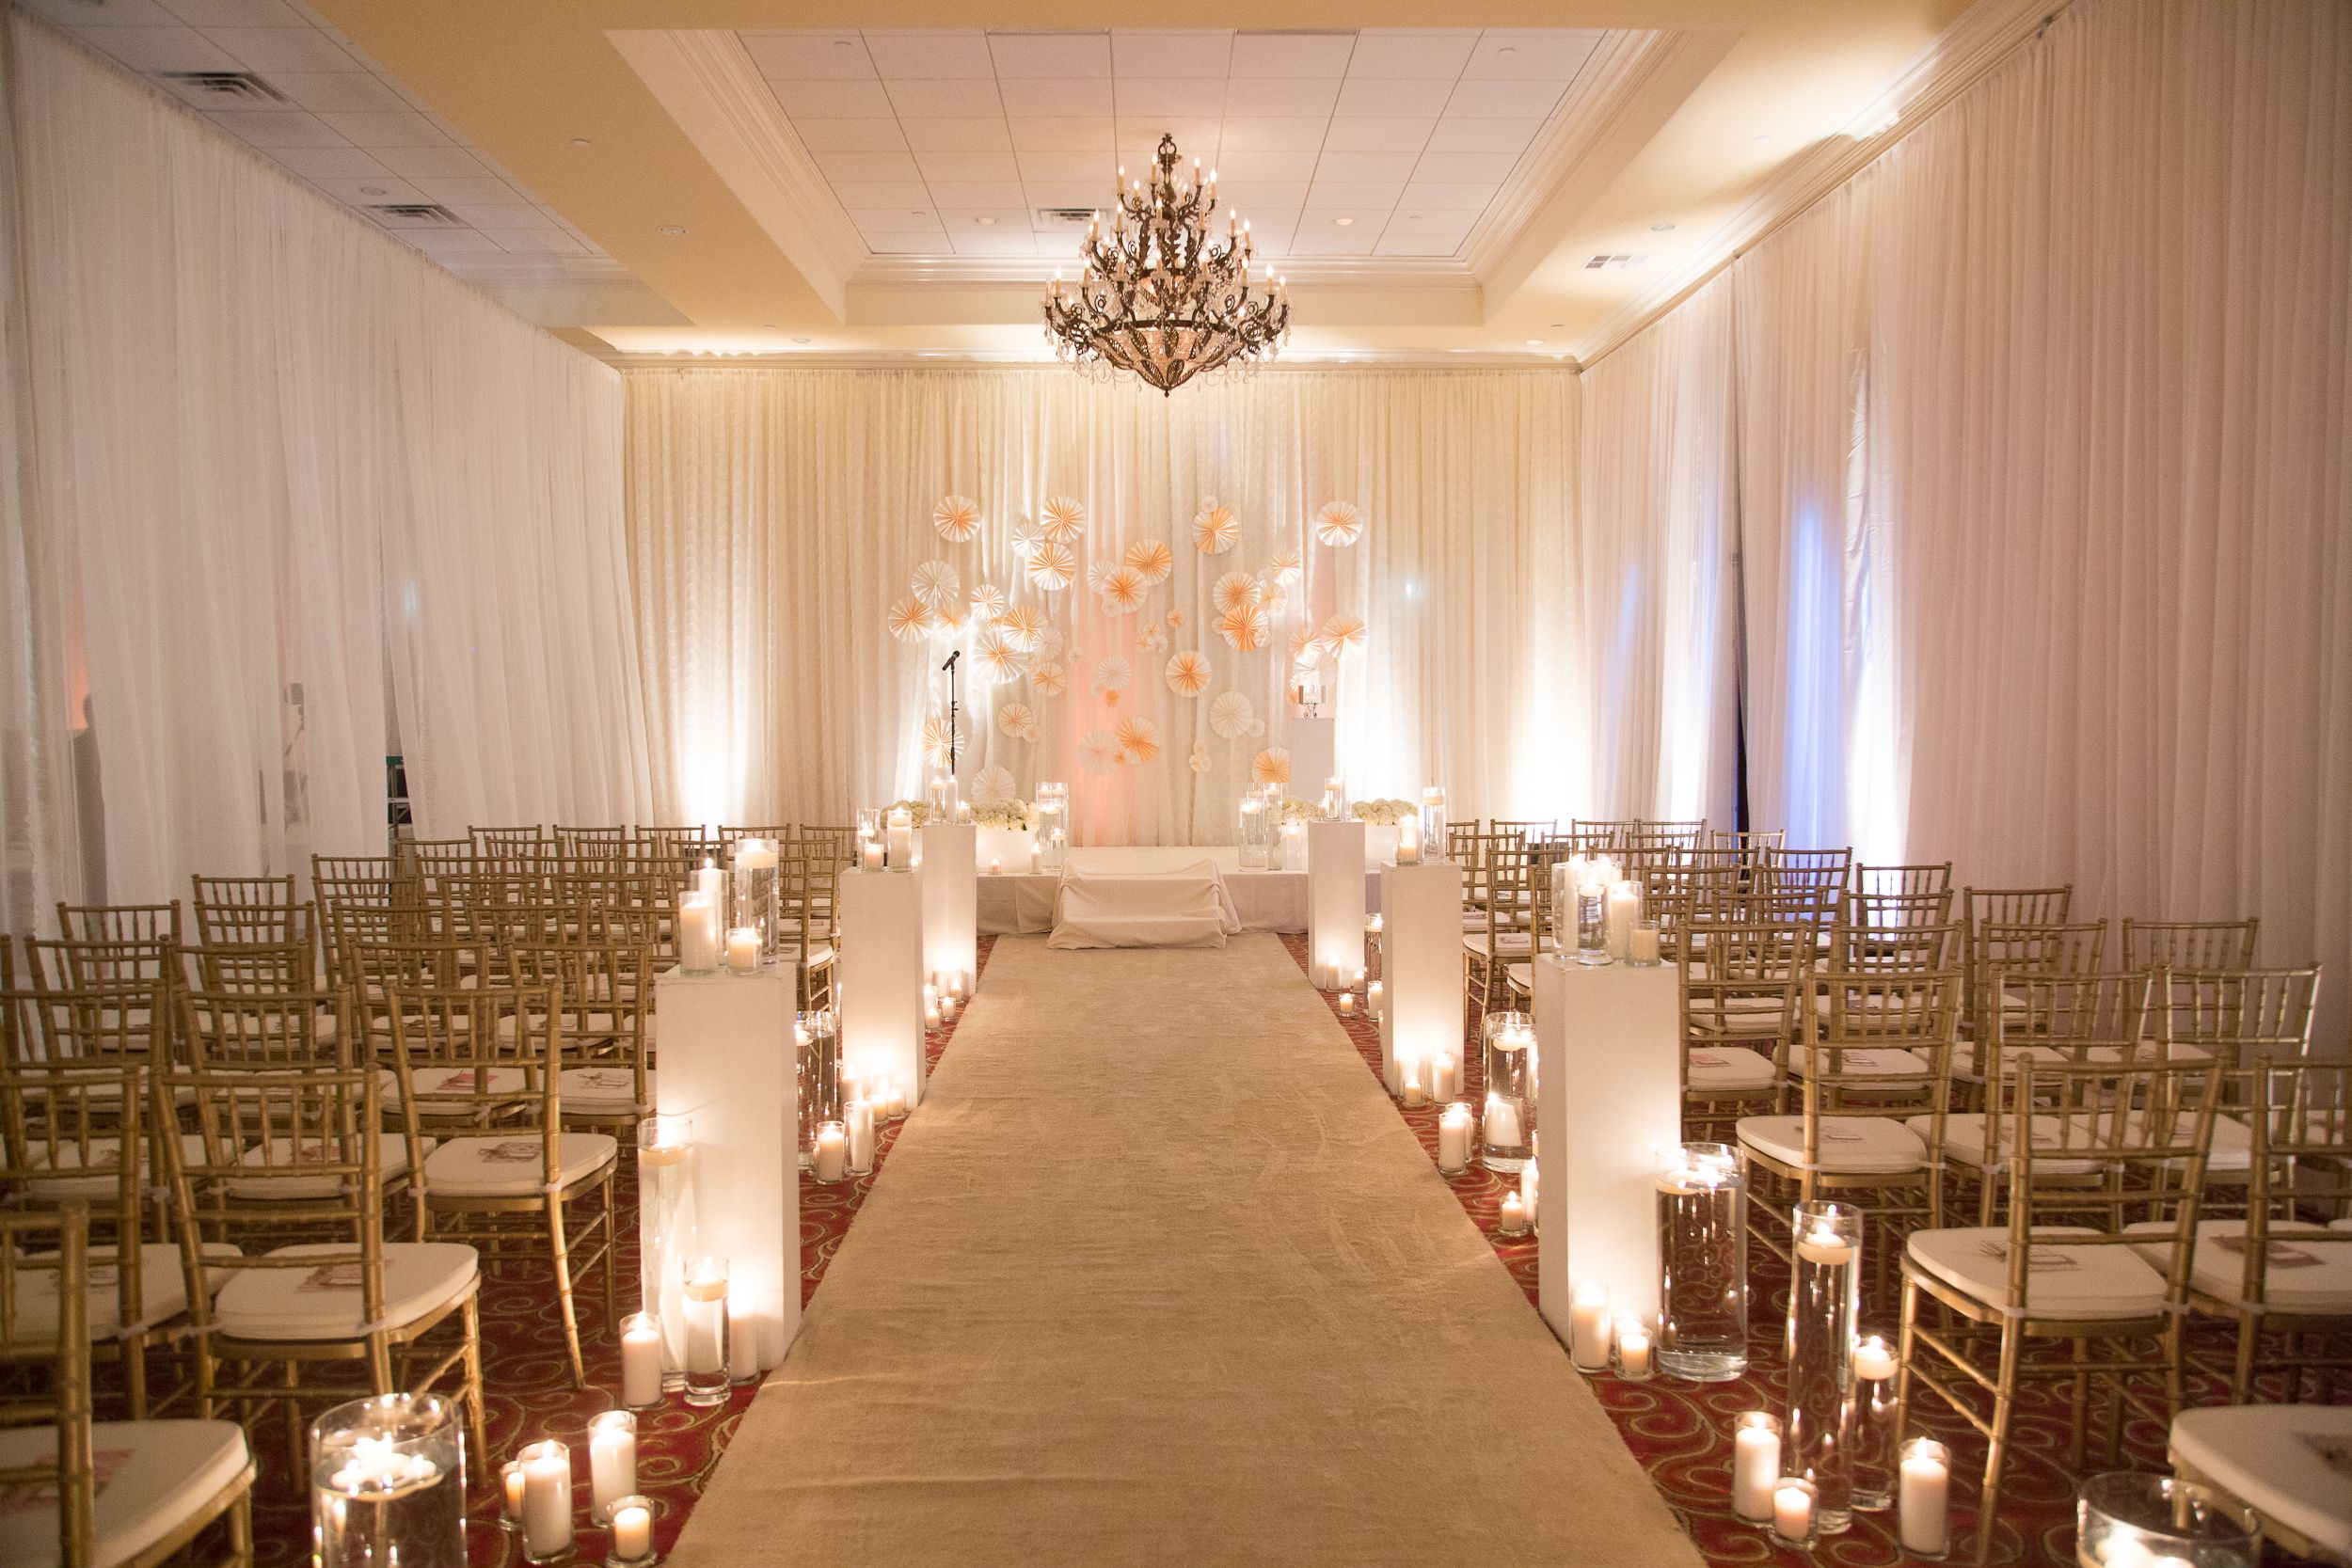 Columns ivory fabric uplighting wedding ceremony downtown double tree - White Vintage Wedding Candles Indoor Ceremony At The Villa Westminster Walkway With Columns Ivory Satin Back Drop